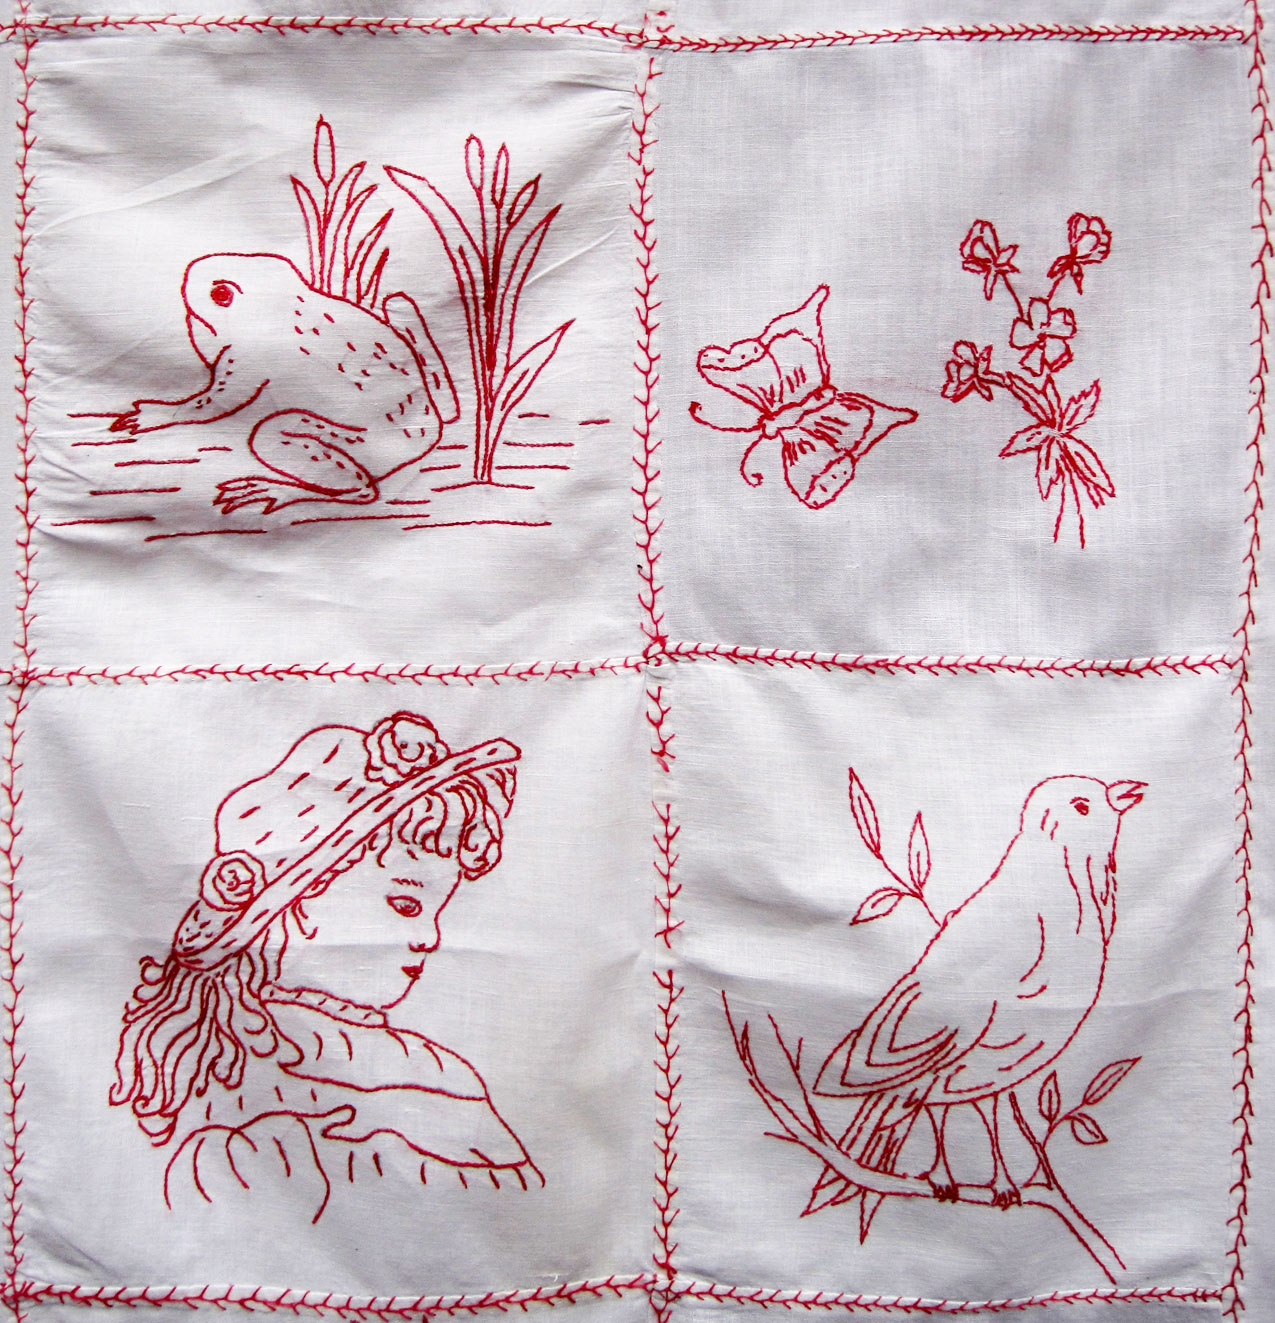 Embroidery Redwork Designs On Pinterest | Primitive Stitchery Embroidery Patterns And ...